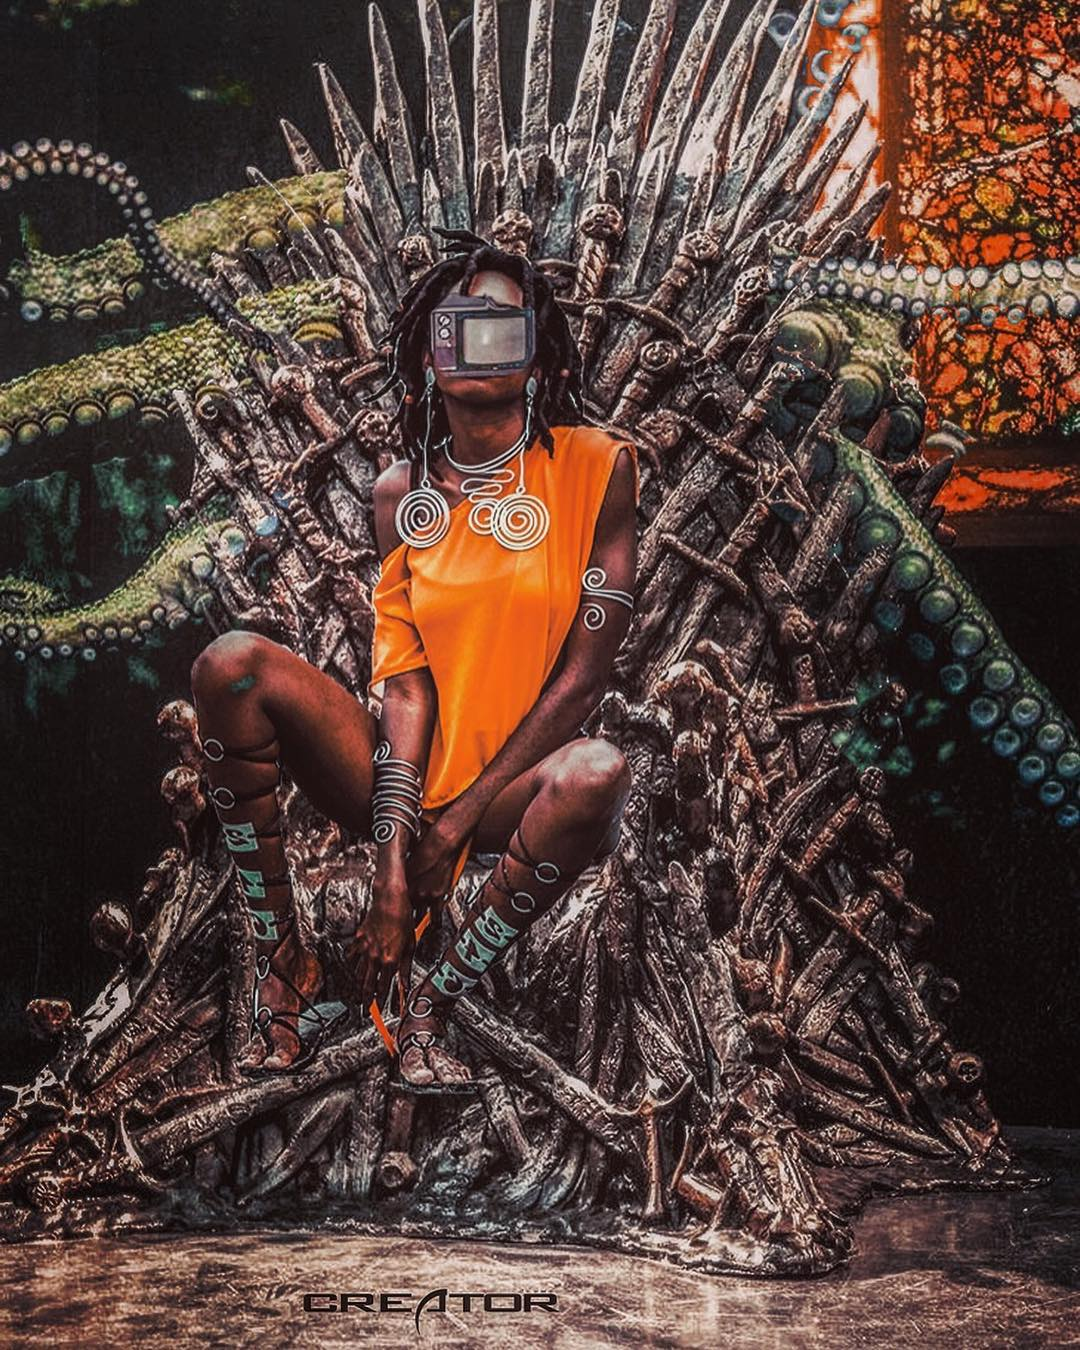 49590858 509086369580411 2699678107464830173 n - The Nigerian Anonymous Digital Artist whose Work Will Make You Shiver!